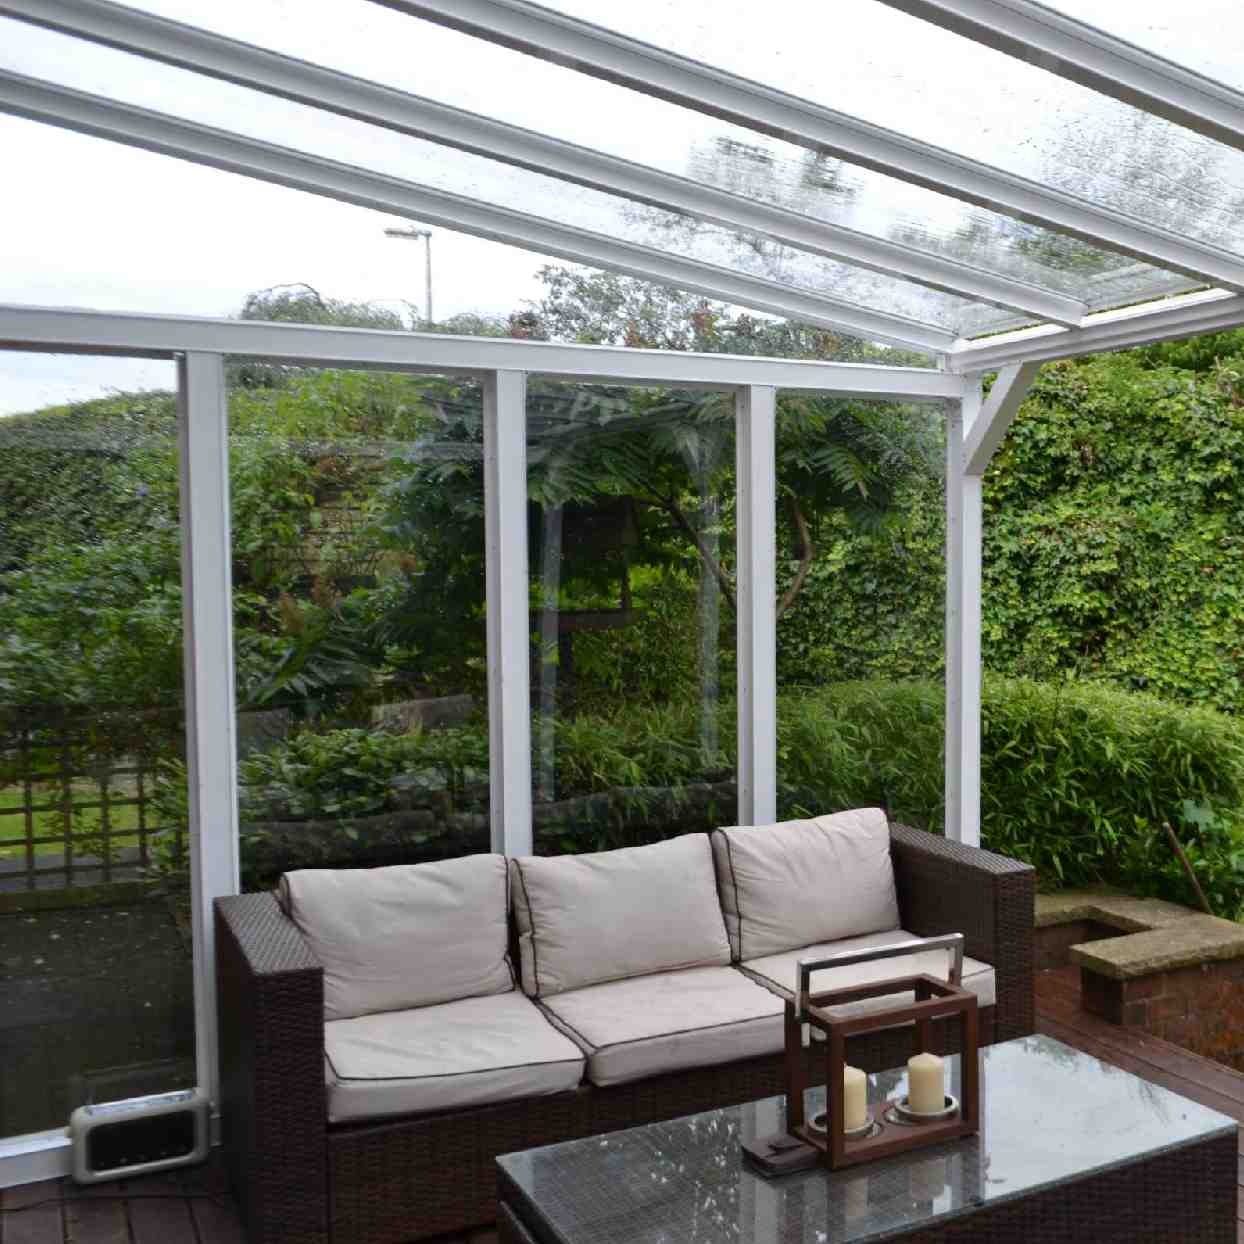 Buy Omega Verandah with 6mm Glass Clear Plate Polycarbonate Glazing - 4.2m (W) x 3.0m (P), (3) Supporting Posts online today